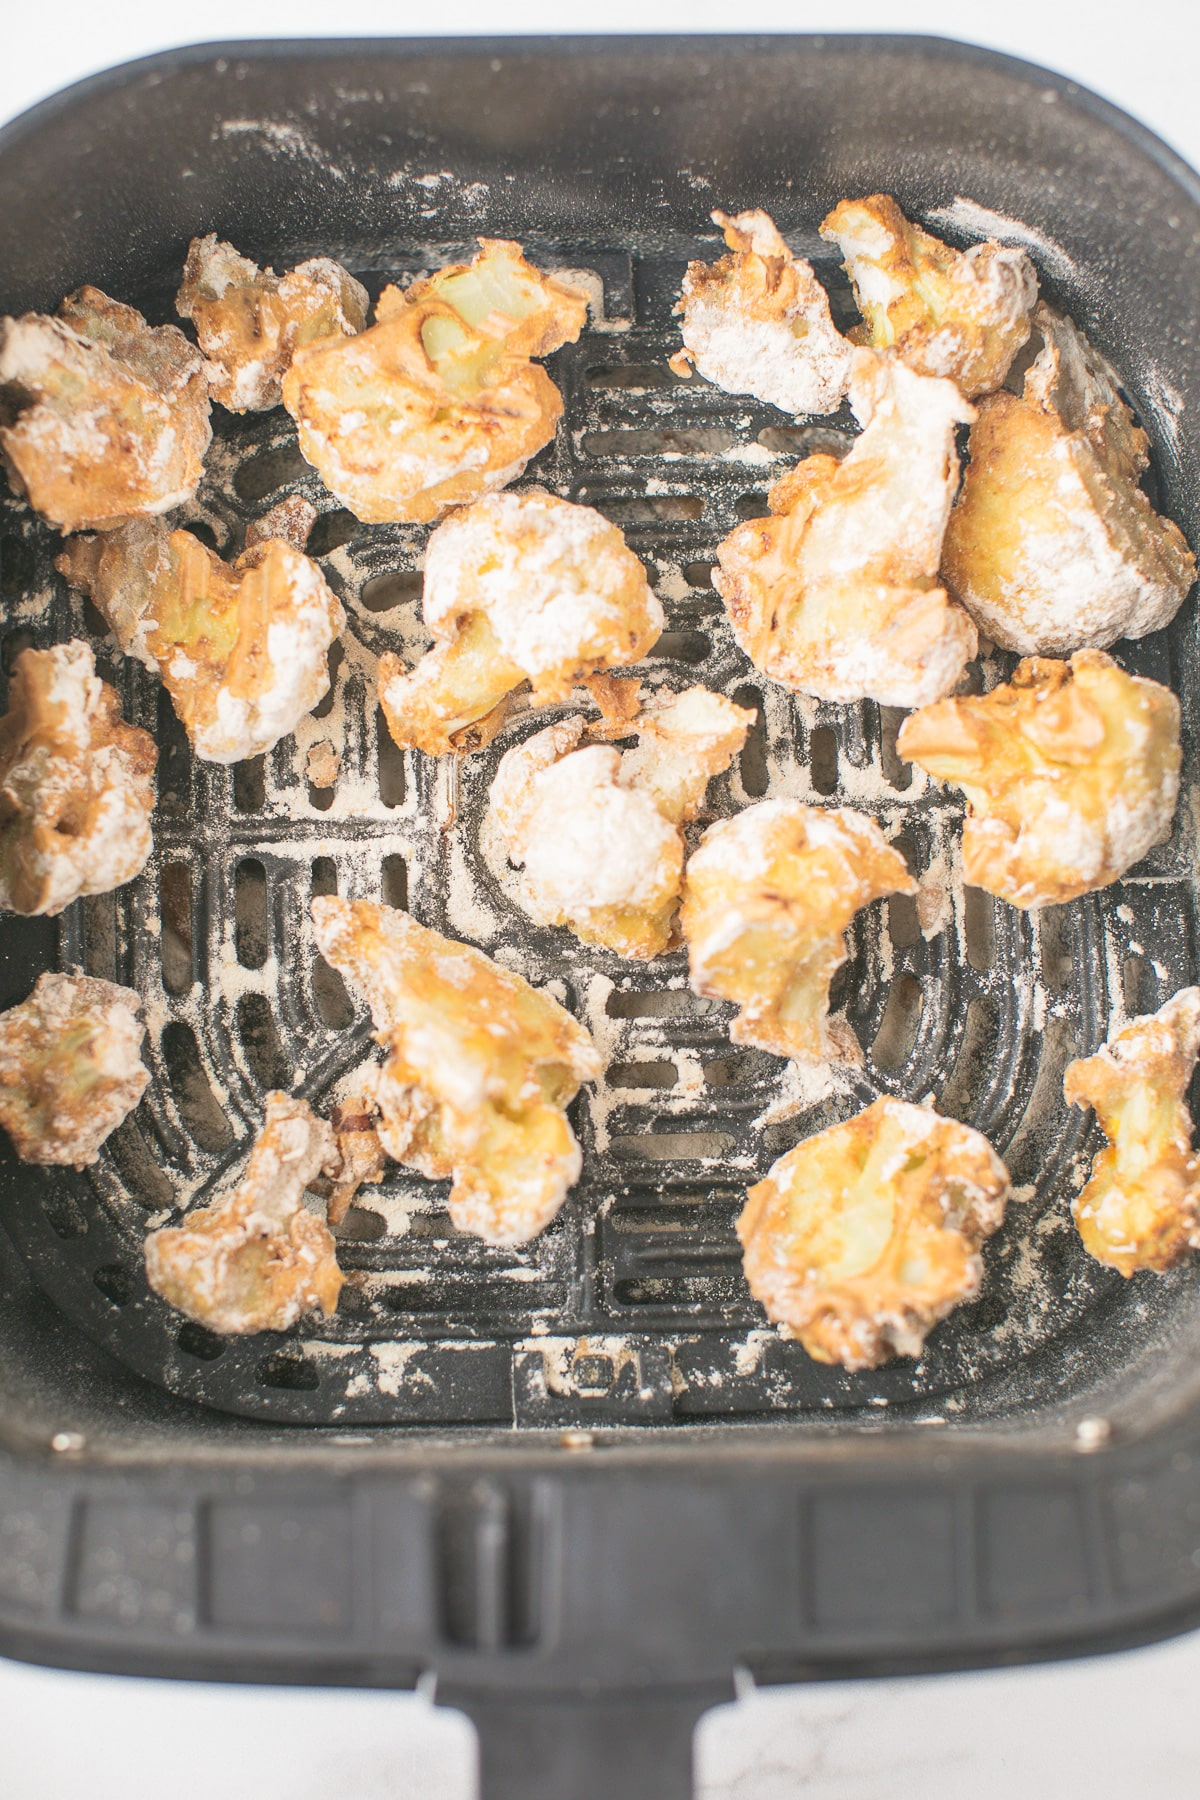 cooked cauliflower in the air fryer basket